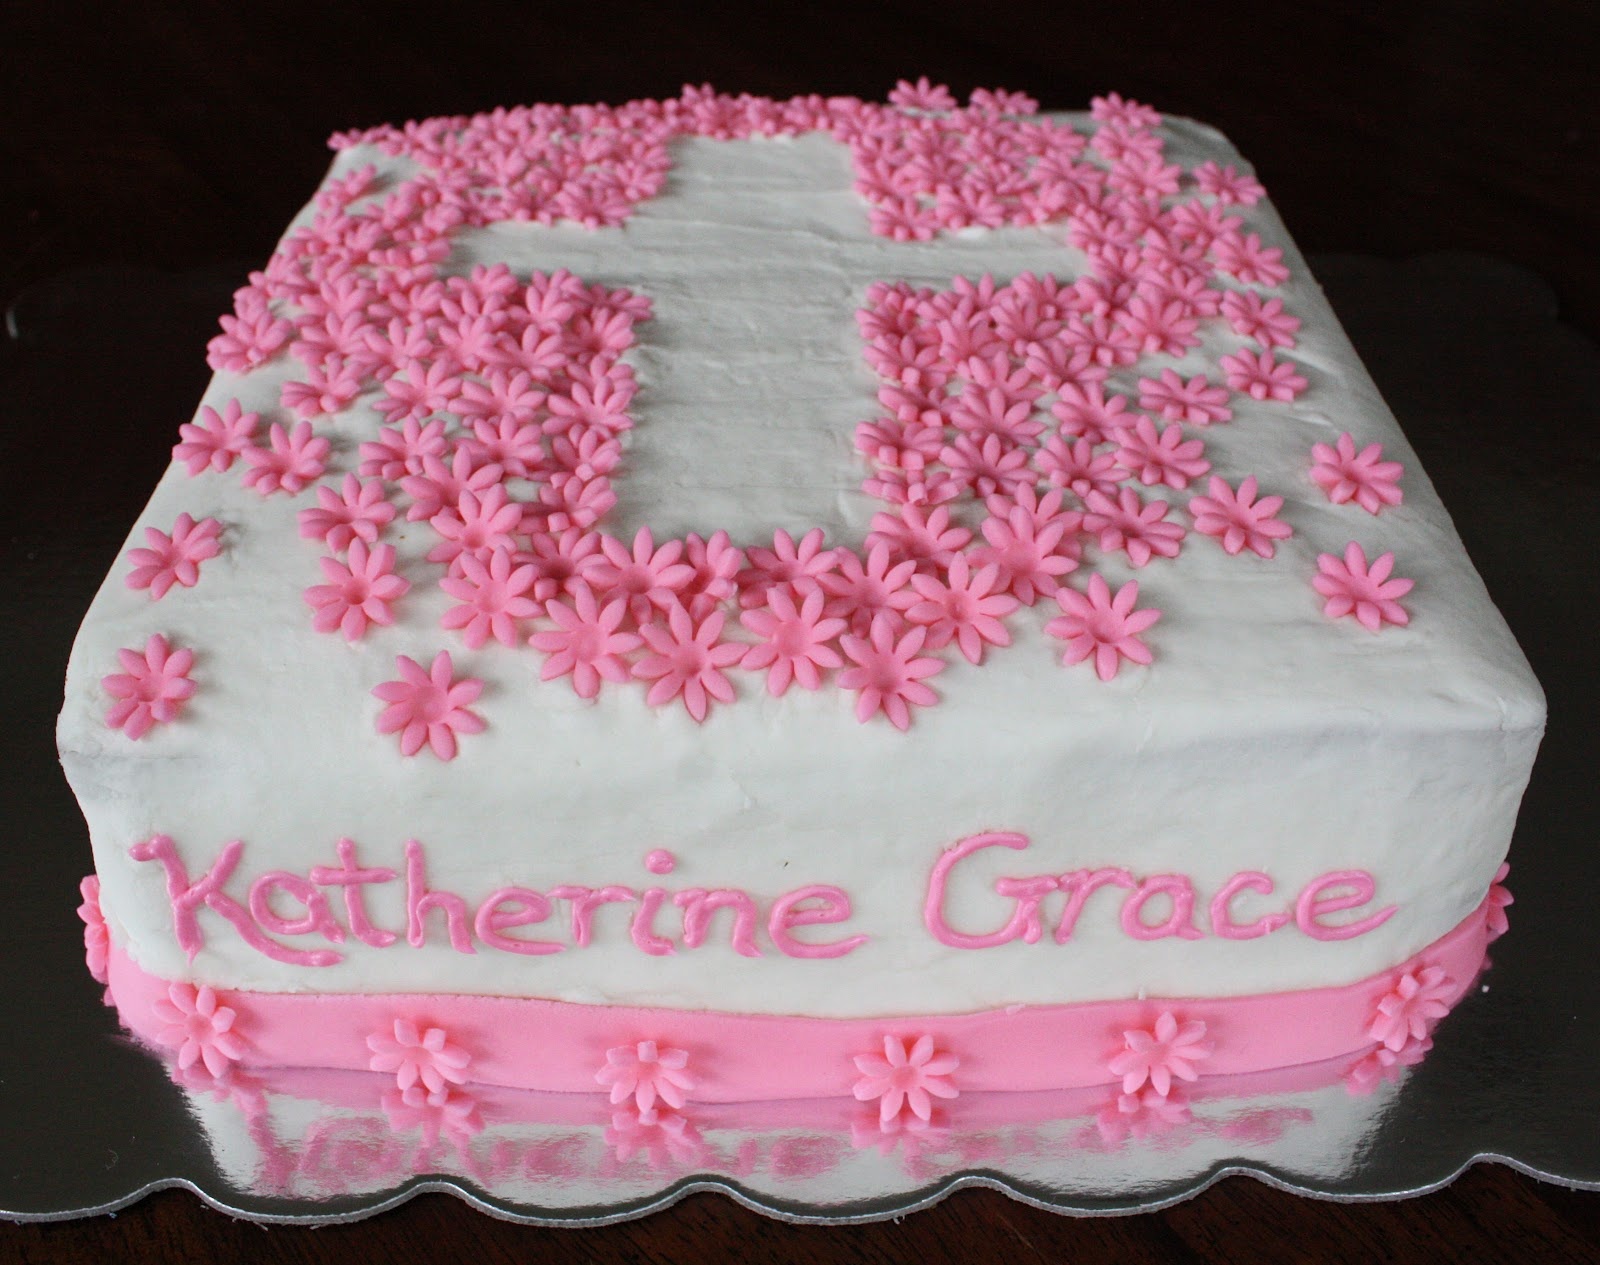 Straight To Cake Katie Graces Baptism Cake